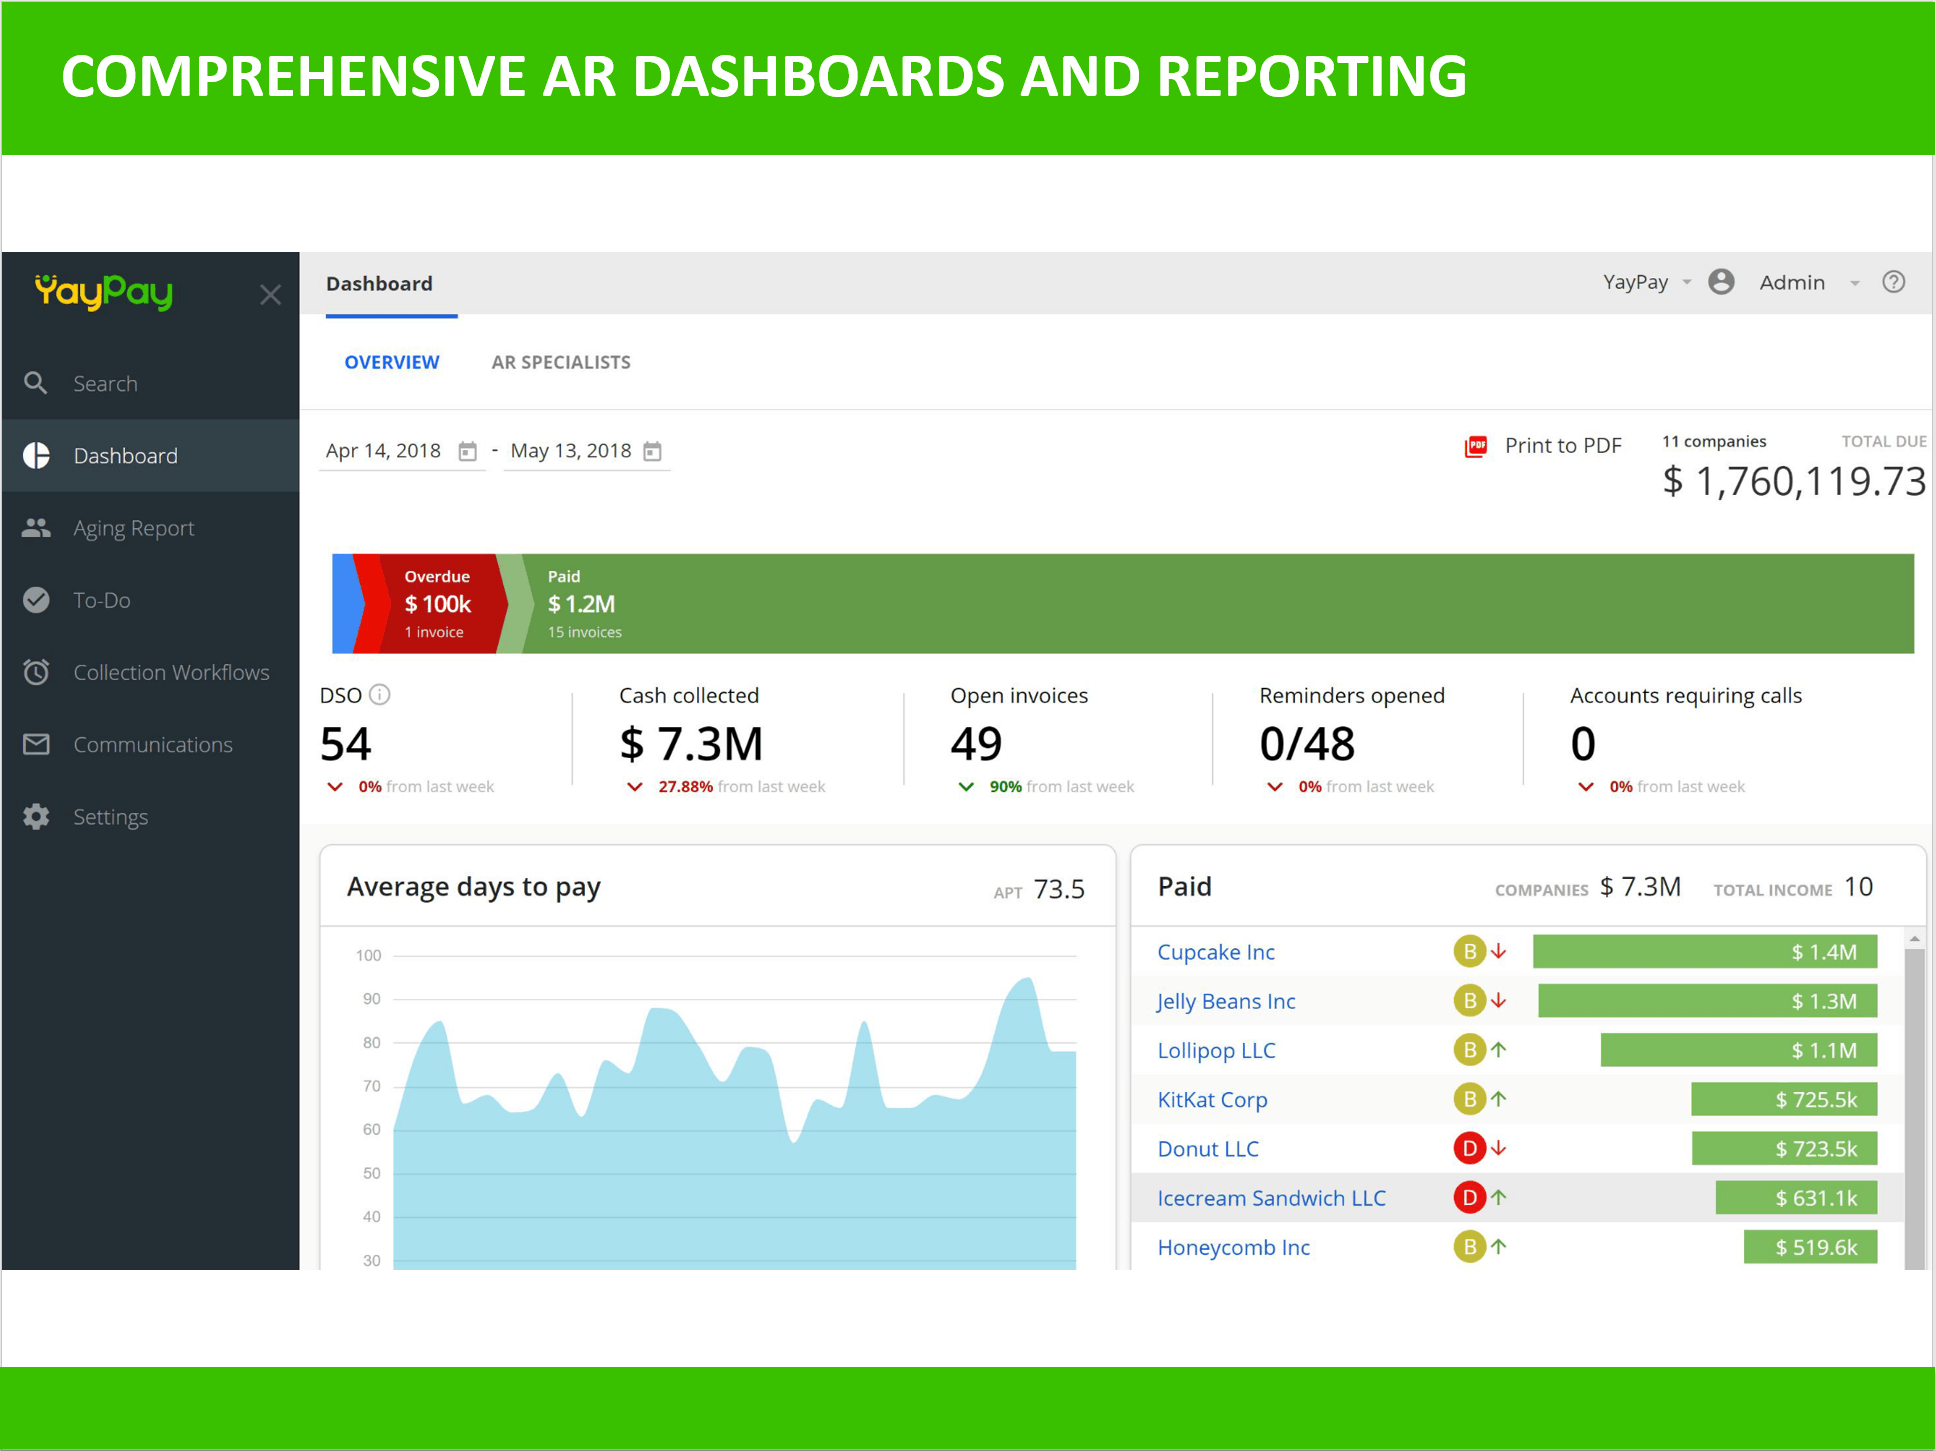 YayPay Comprehensive Reporting